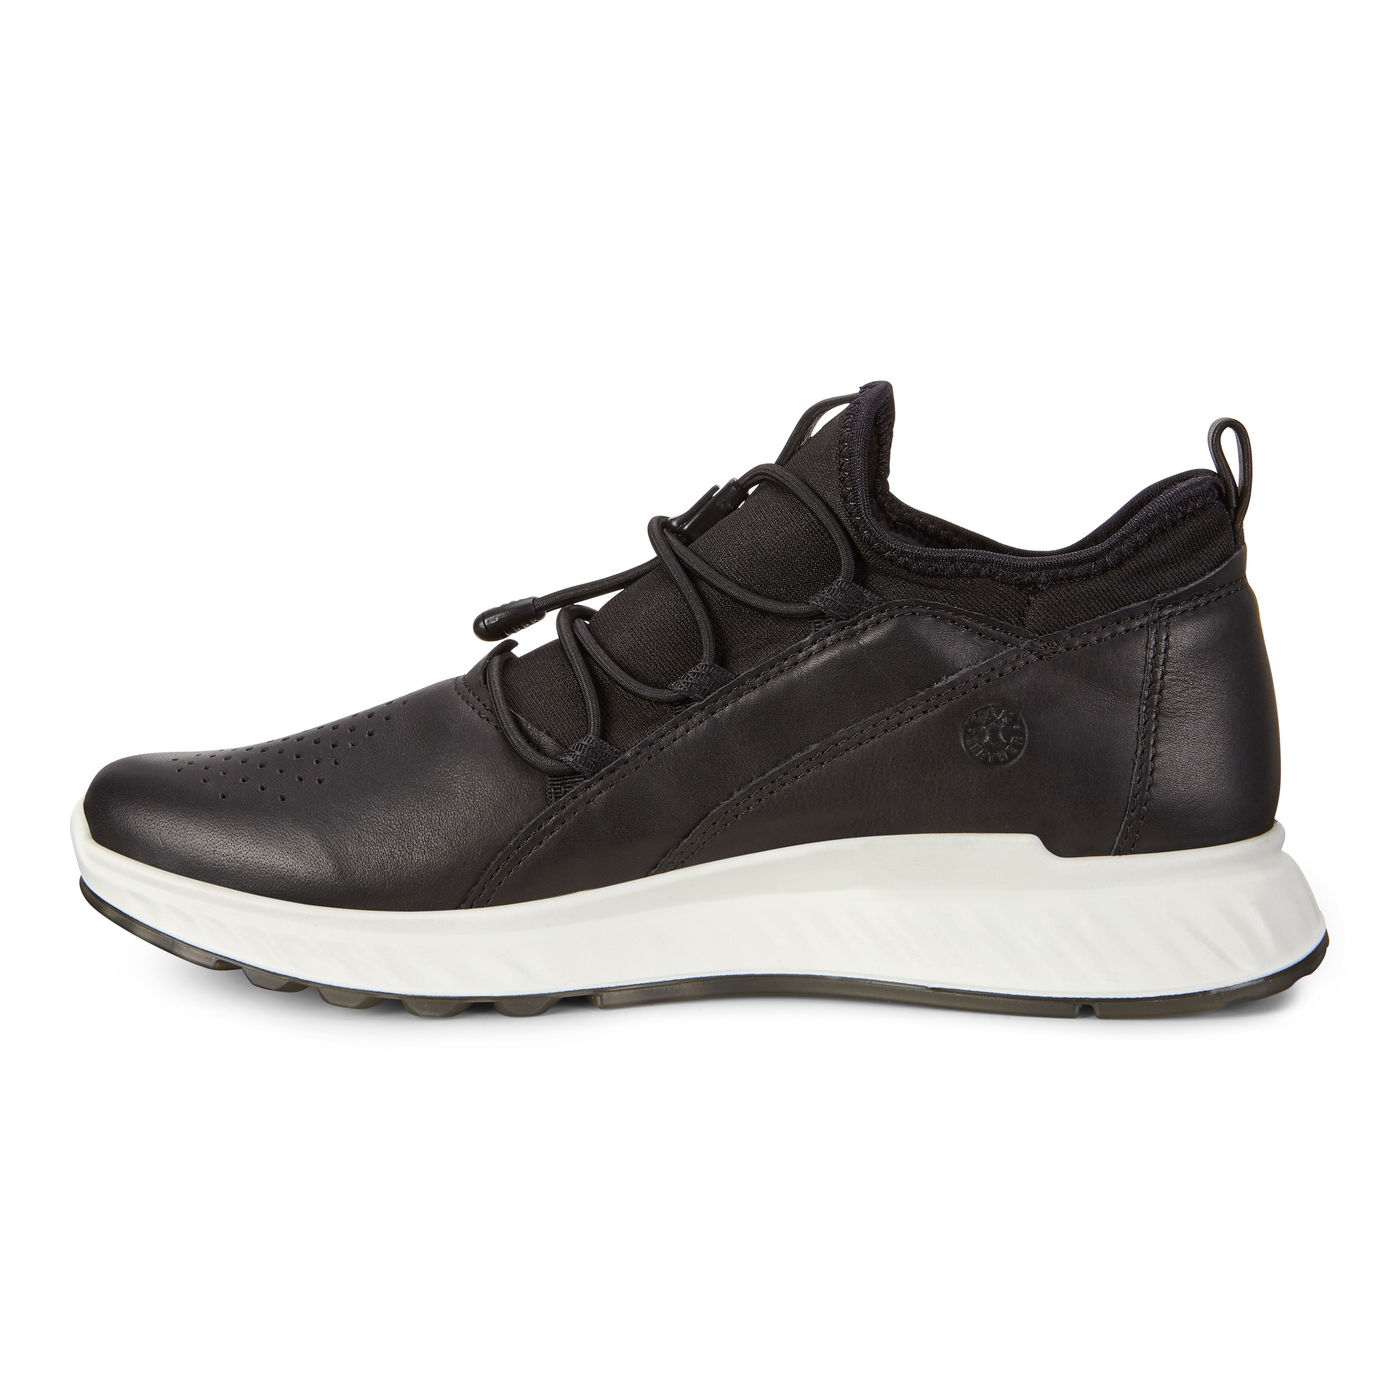 ECCO ST1 Womens High Cut Athleisure Sneaker Toggle